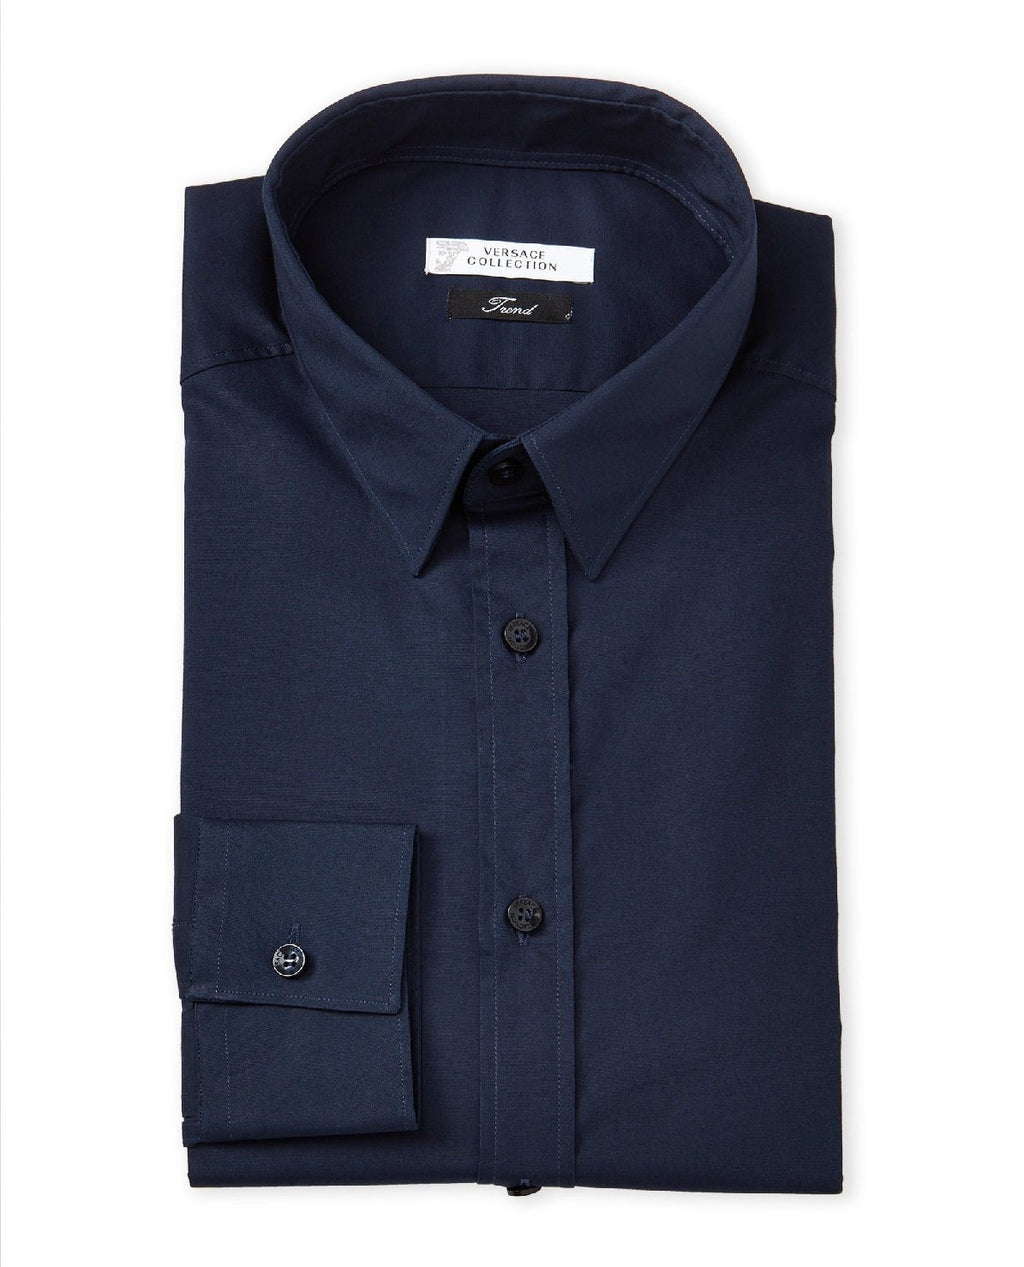 VERSACE COLLECTION City Fit Dress Shirt, Navy